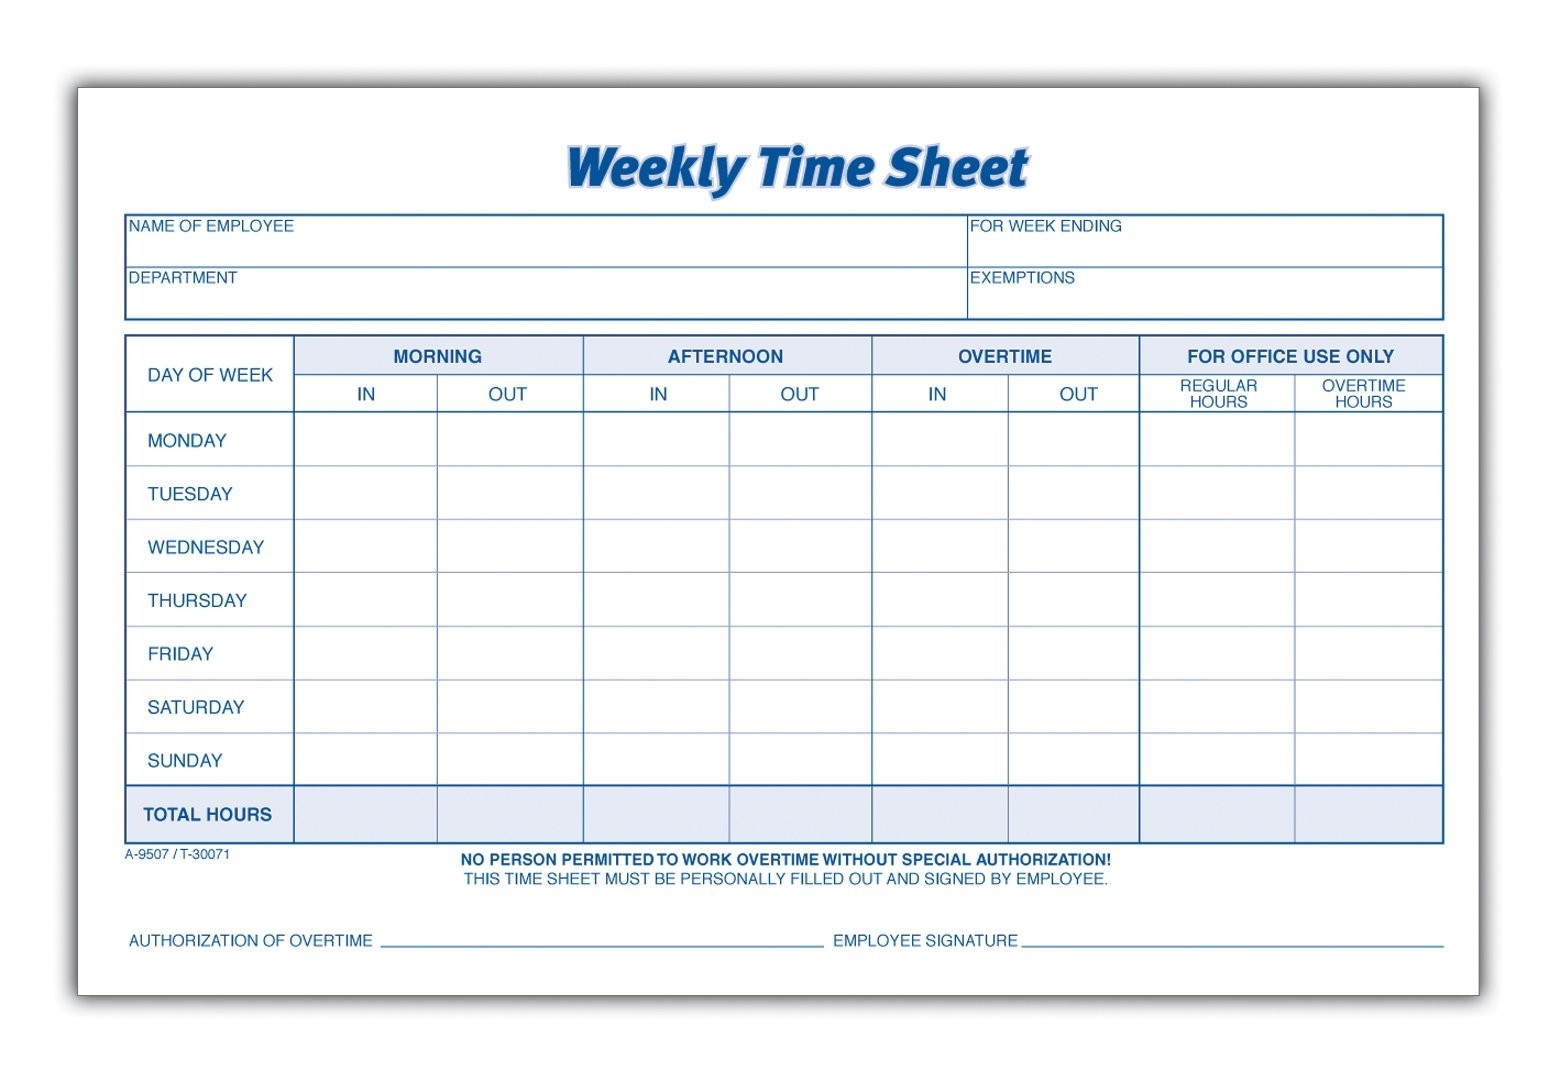 Home Budget Spreadsheet Free Download Home Budget Spreadsheet Free In Time Clock Spreadsheet Template